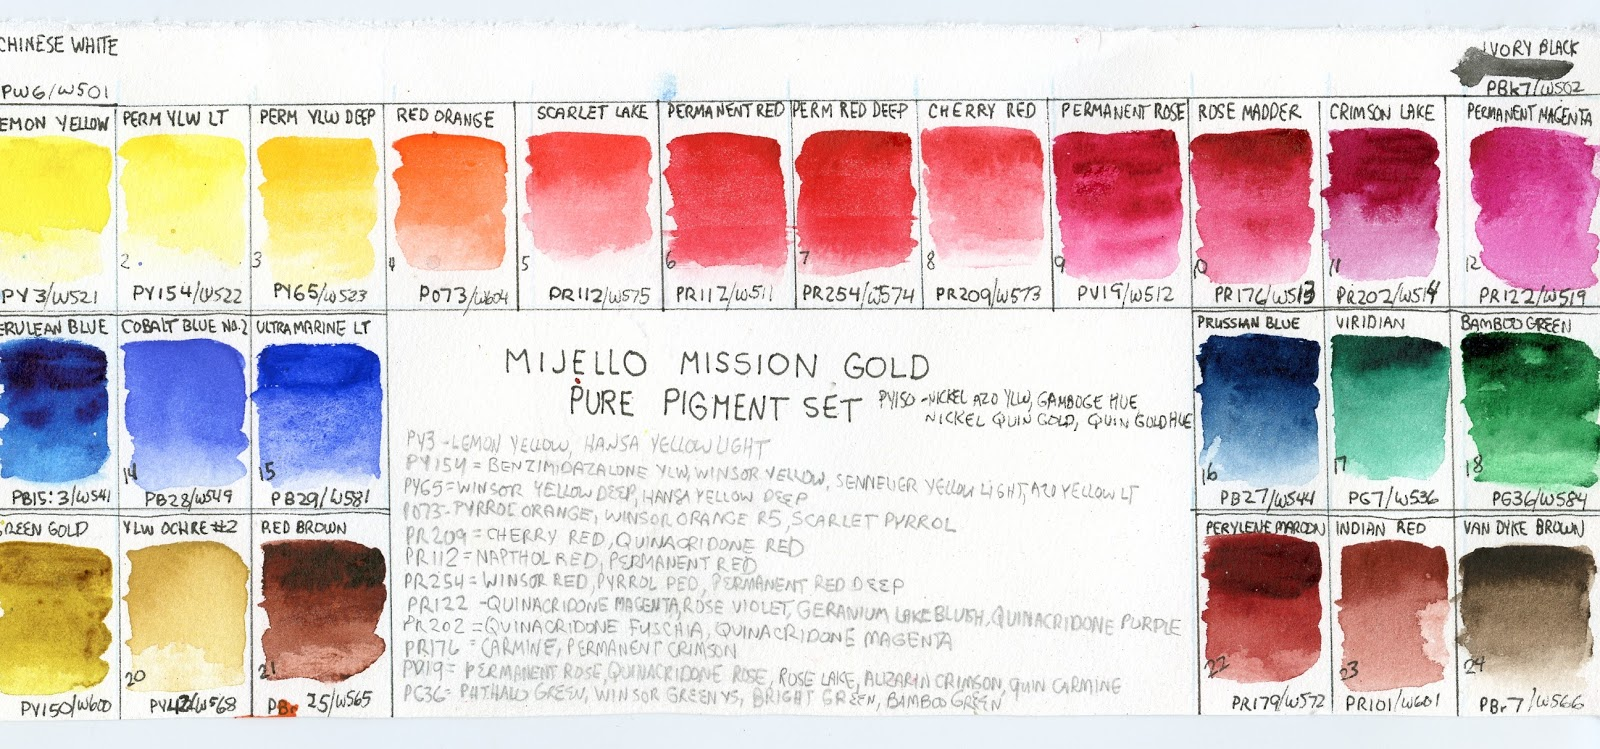 Review mission gold pure pigment watercolor set mijello the colors are intense and you have to work for a lighter tint because they re wet so easily and are so intense a little goes a long way nvjuhfo Images